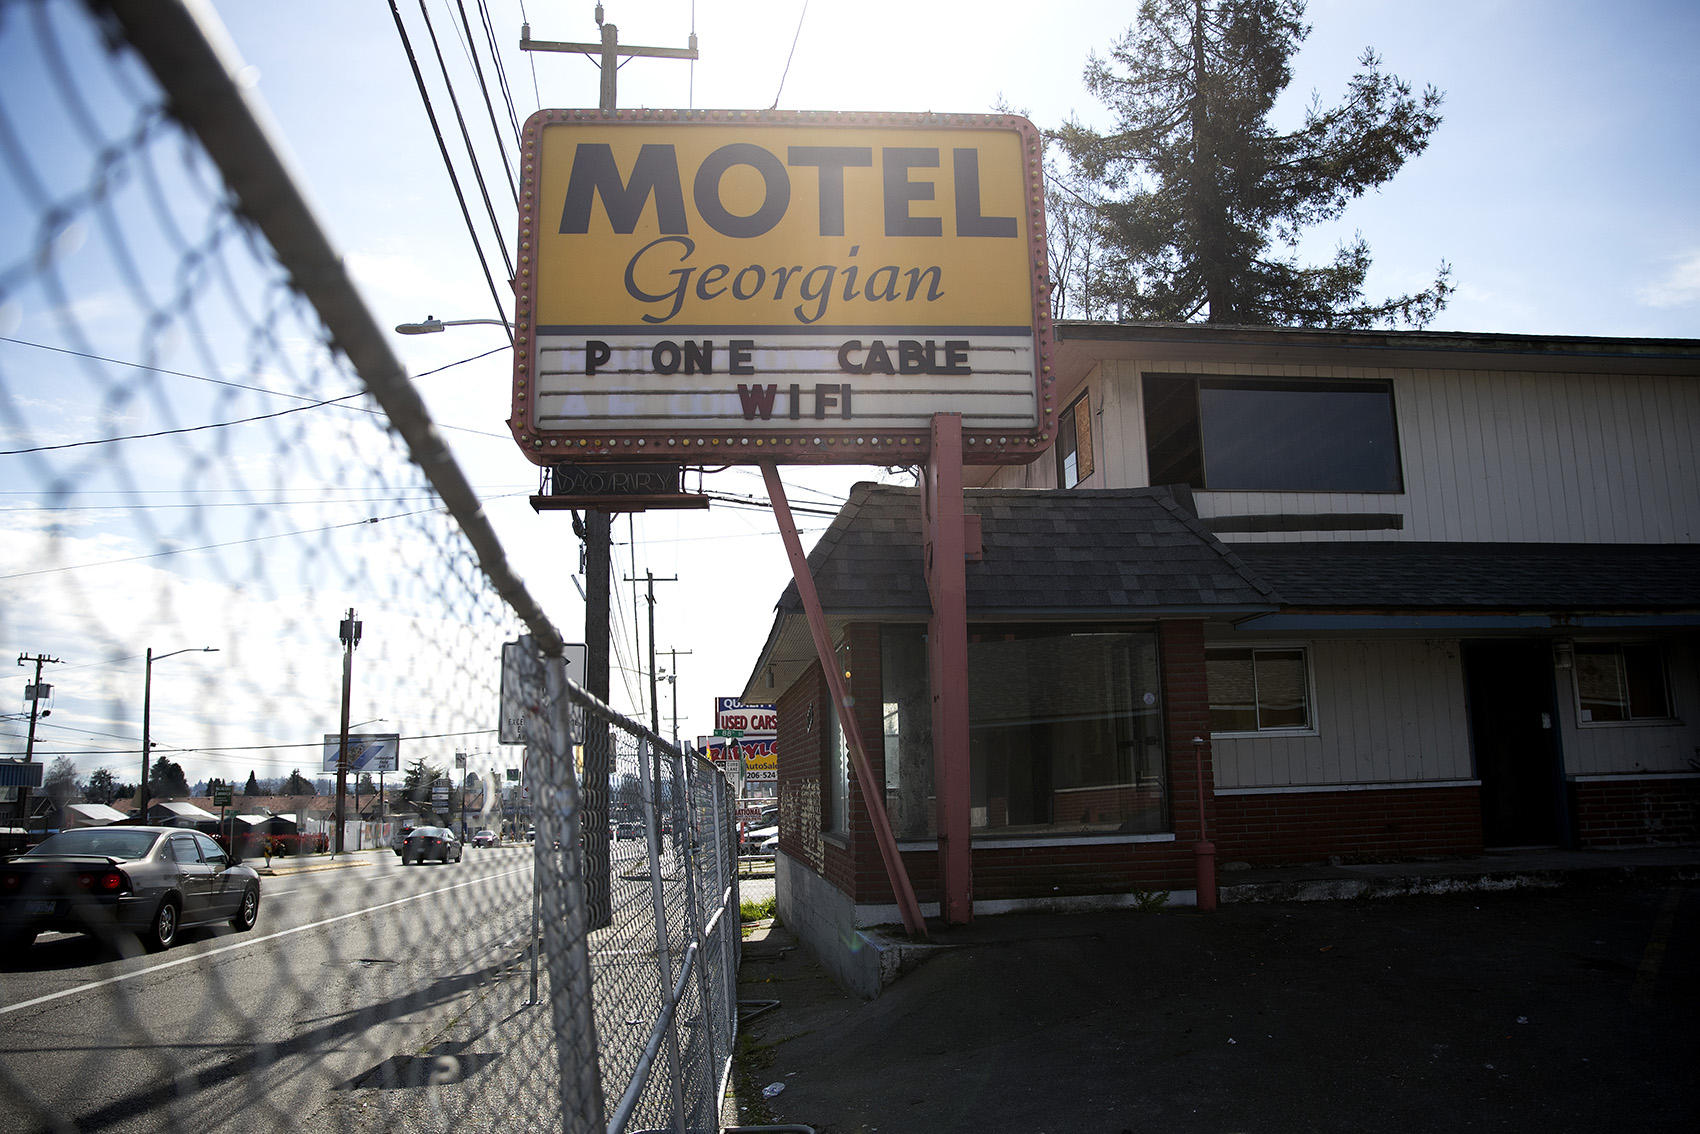 Aurora S Motels Are A Roof Over Seattle S Homeless Crisis